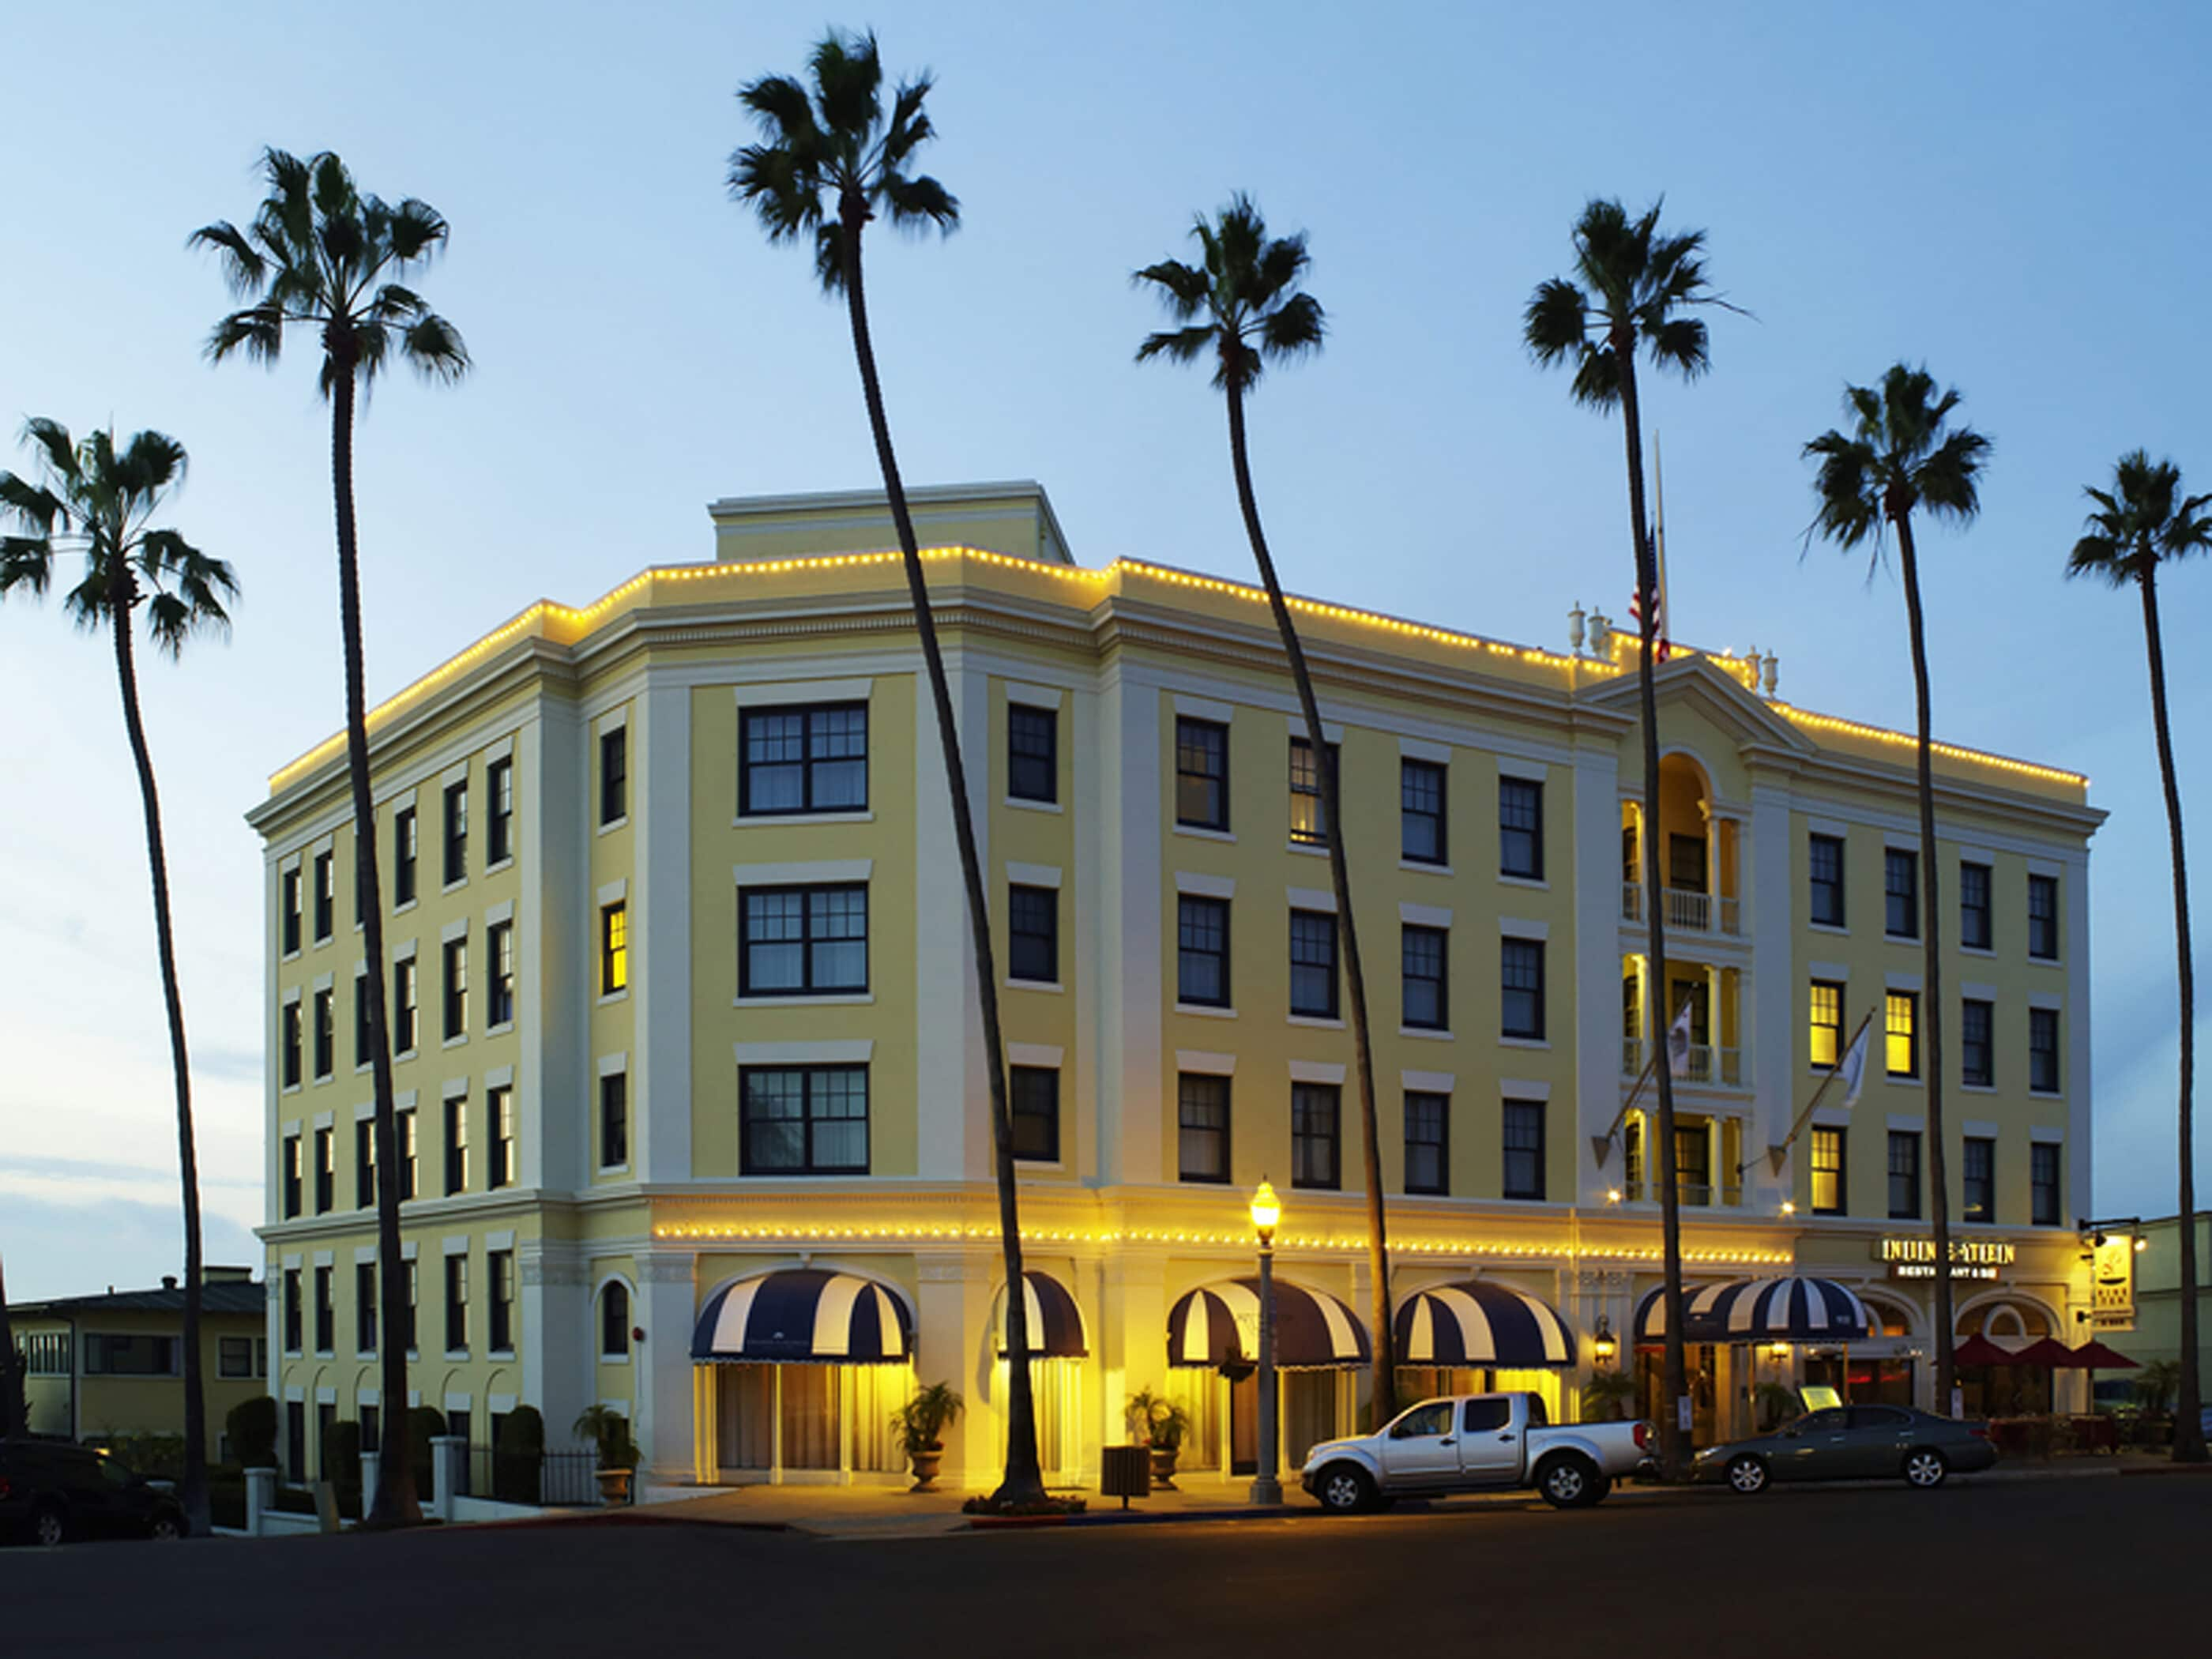 Exterior of Grande Colonial hotel in La Jolla at sunset